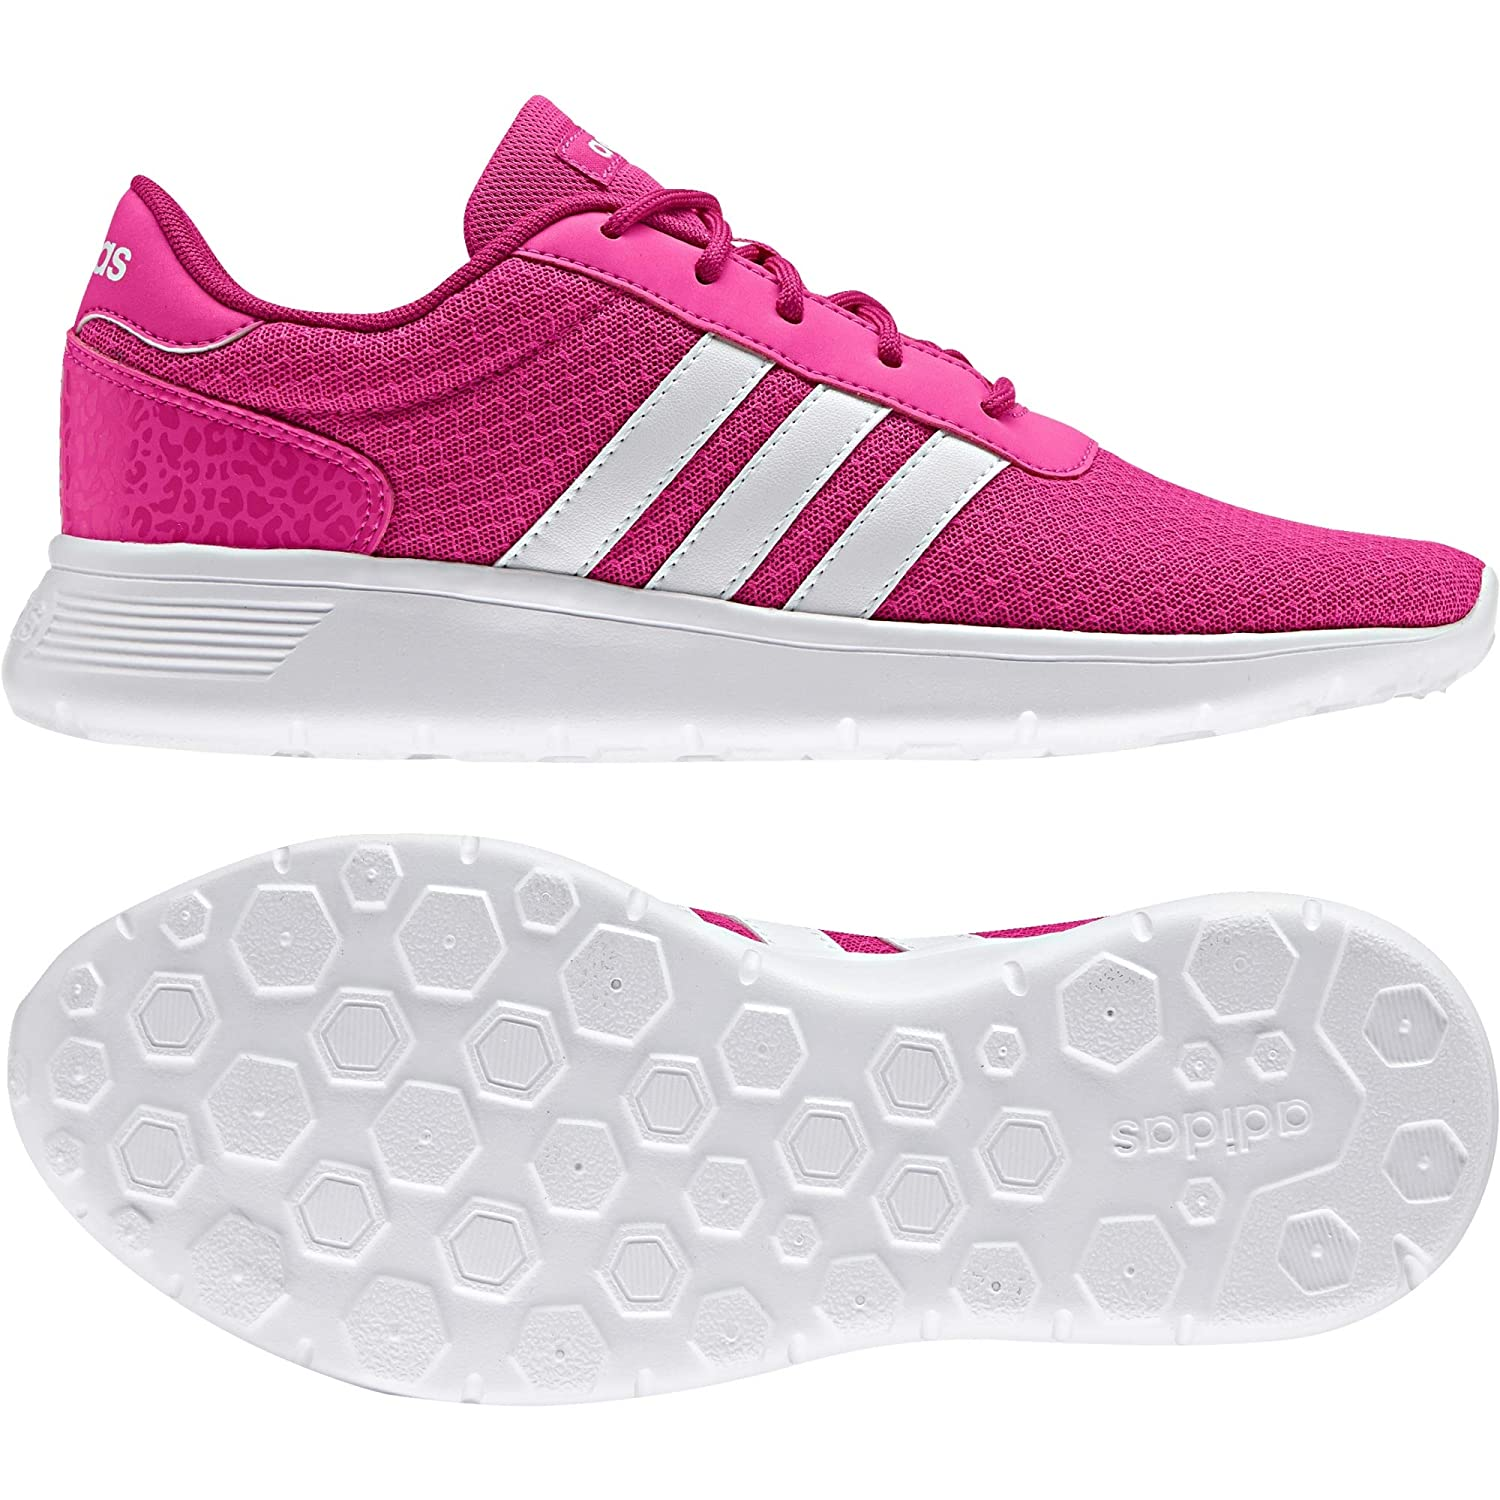 Lite Racer W Size: 6.5 AW3834 adidas Color: Pink